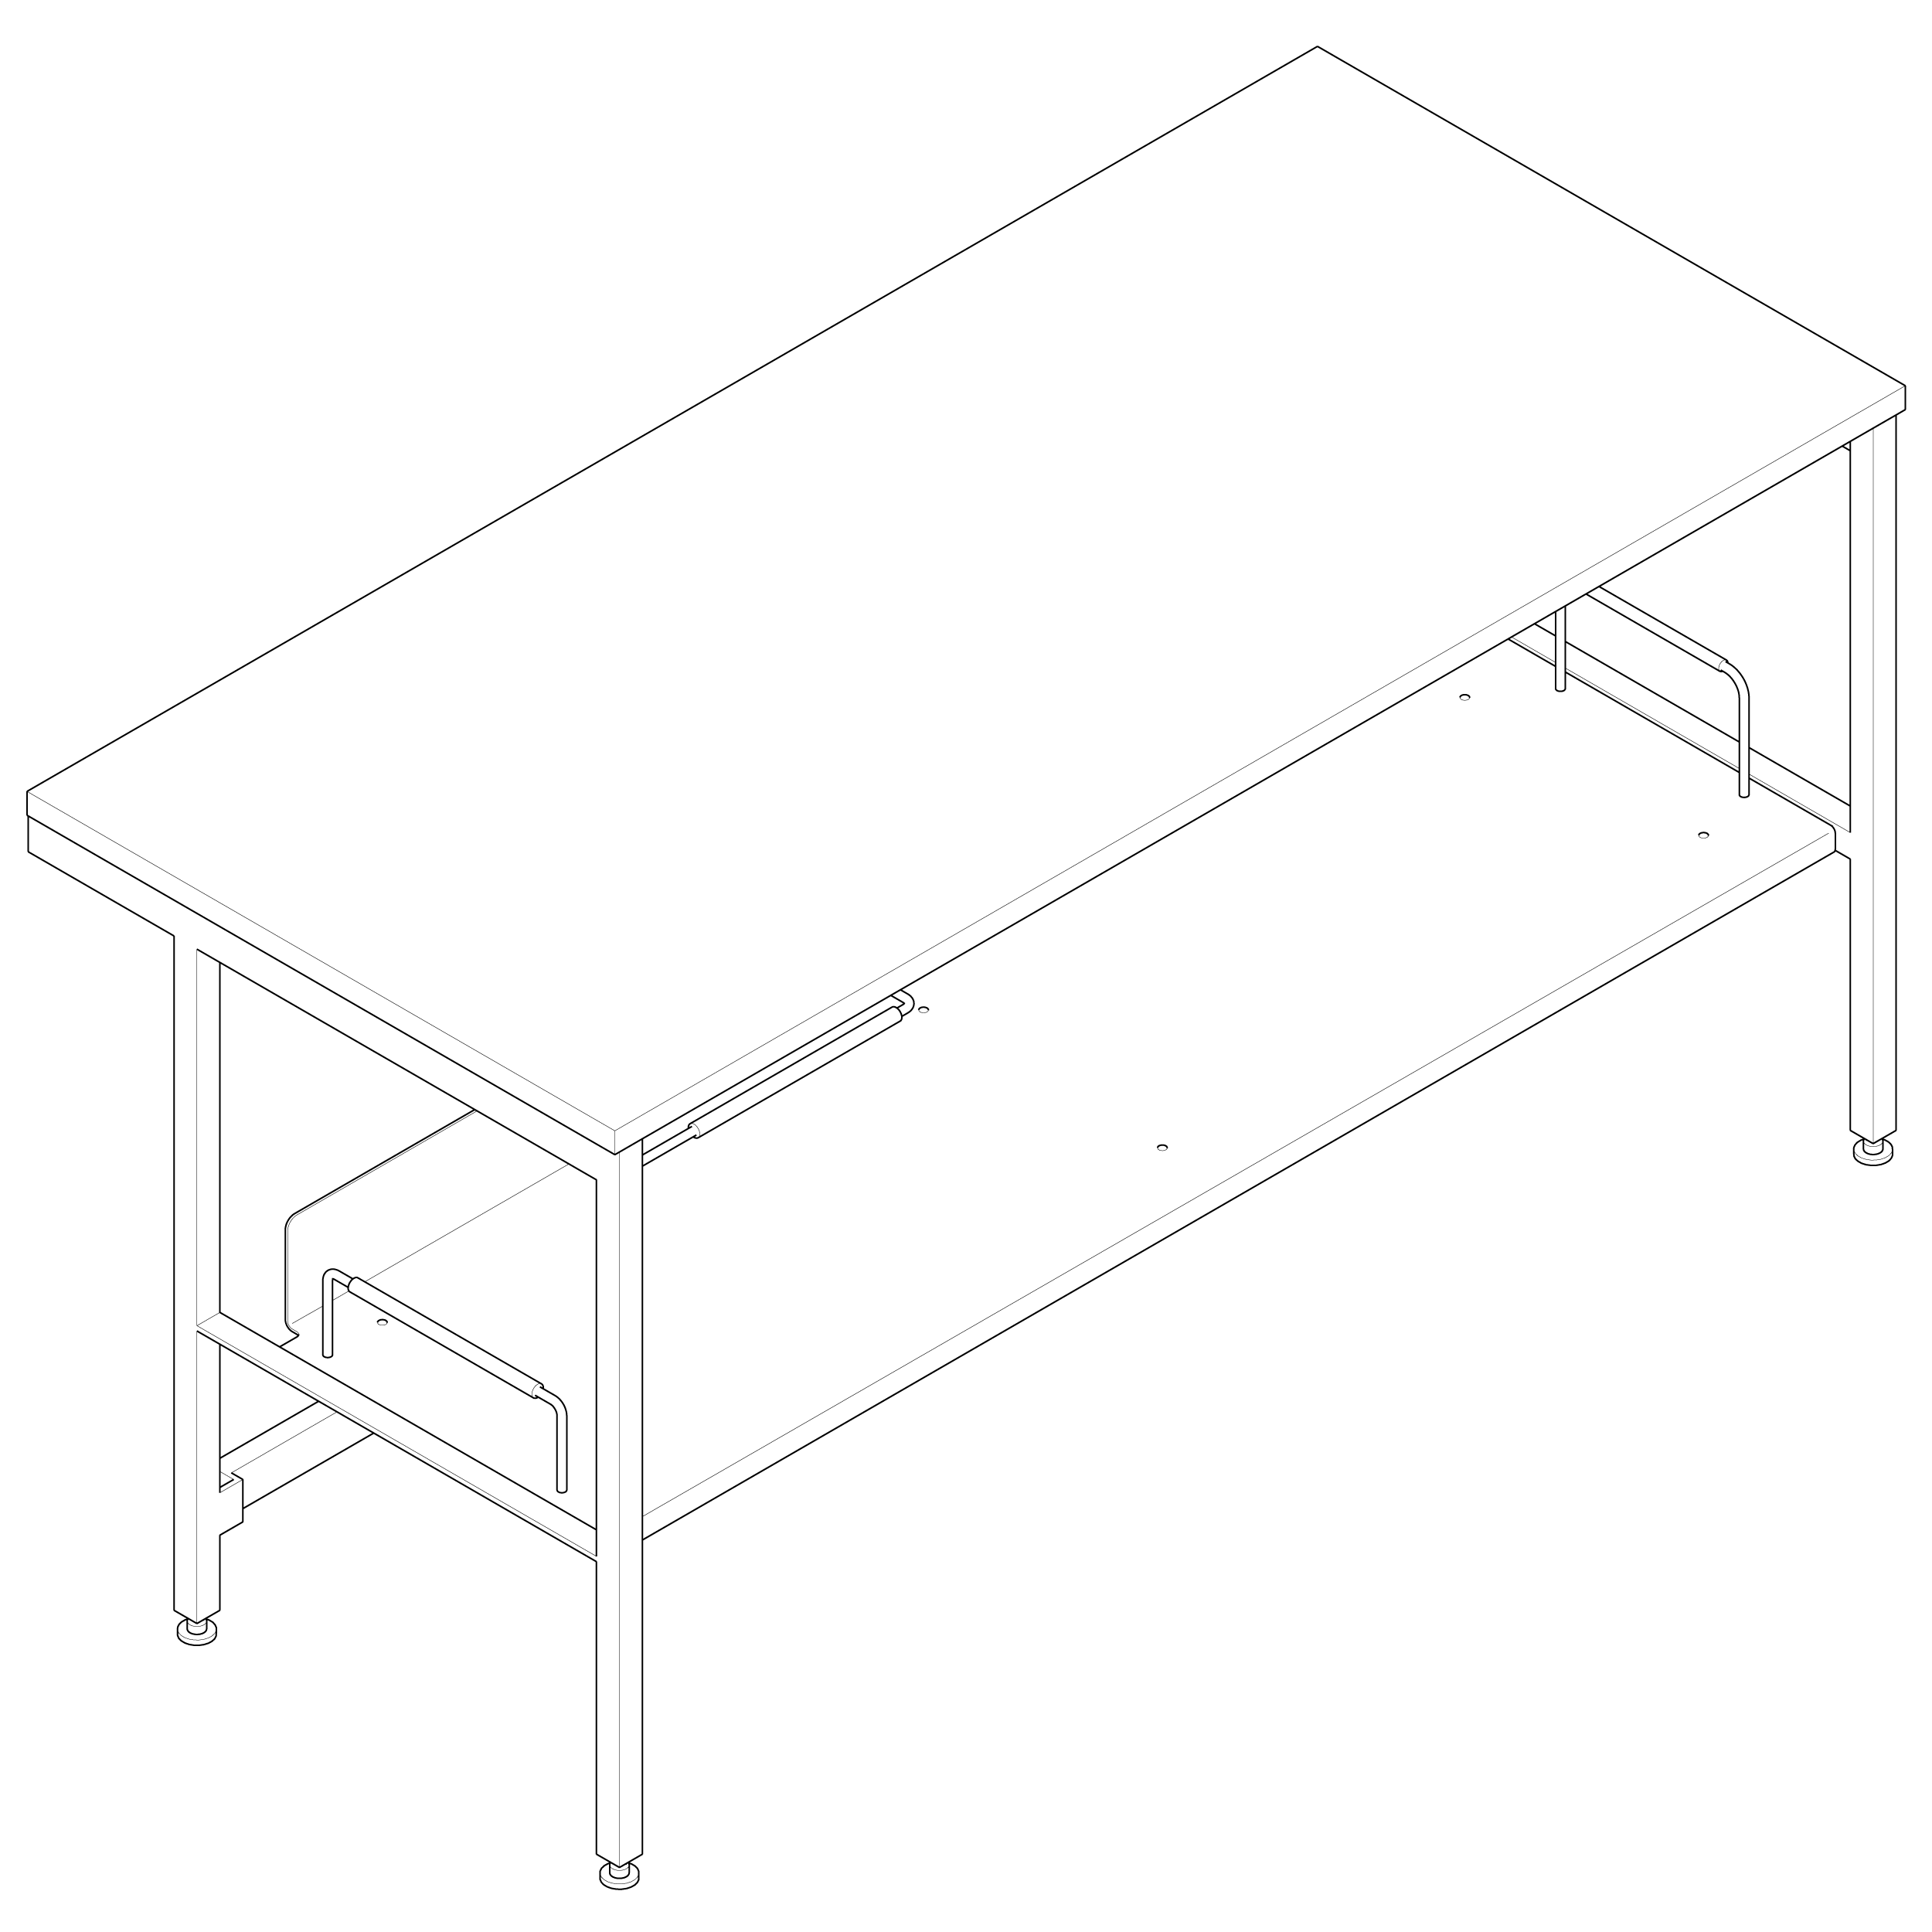 KITCHEN-ISLAND-CONFIGURATIONS-web-1.png